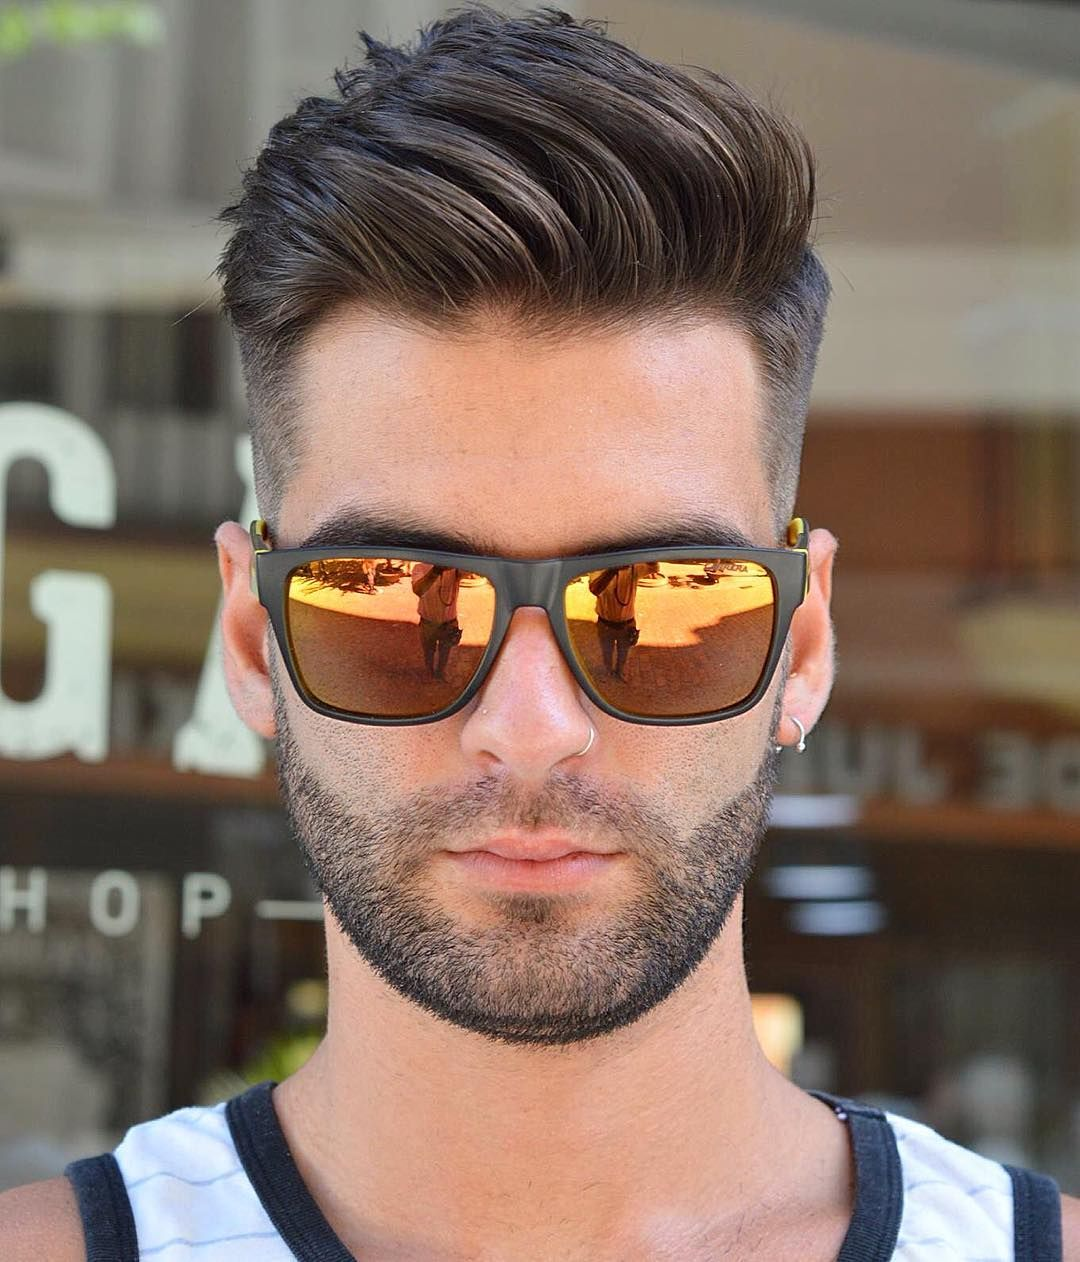 New Hairstyle Delectable 100 New Men's Hairstyles For 2018 Top Picks  Haircuts Hair